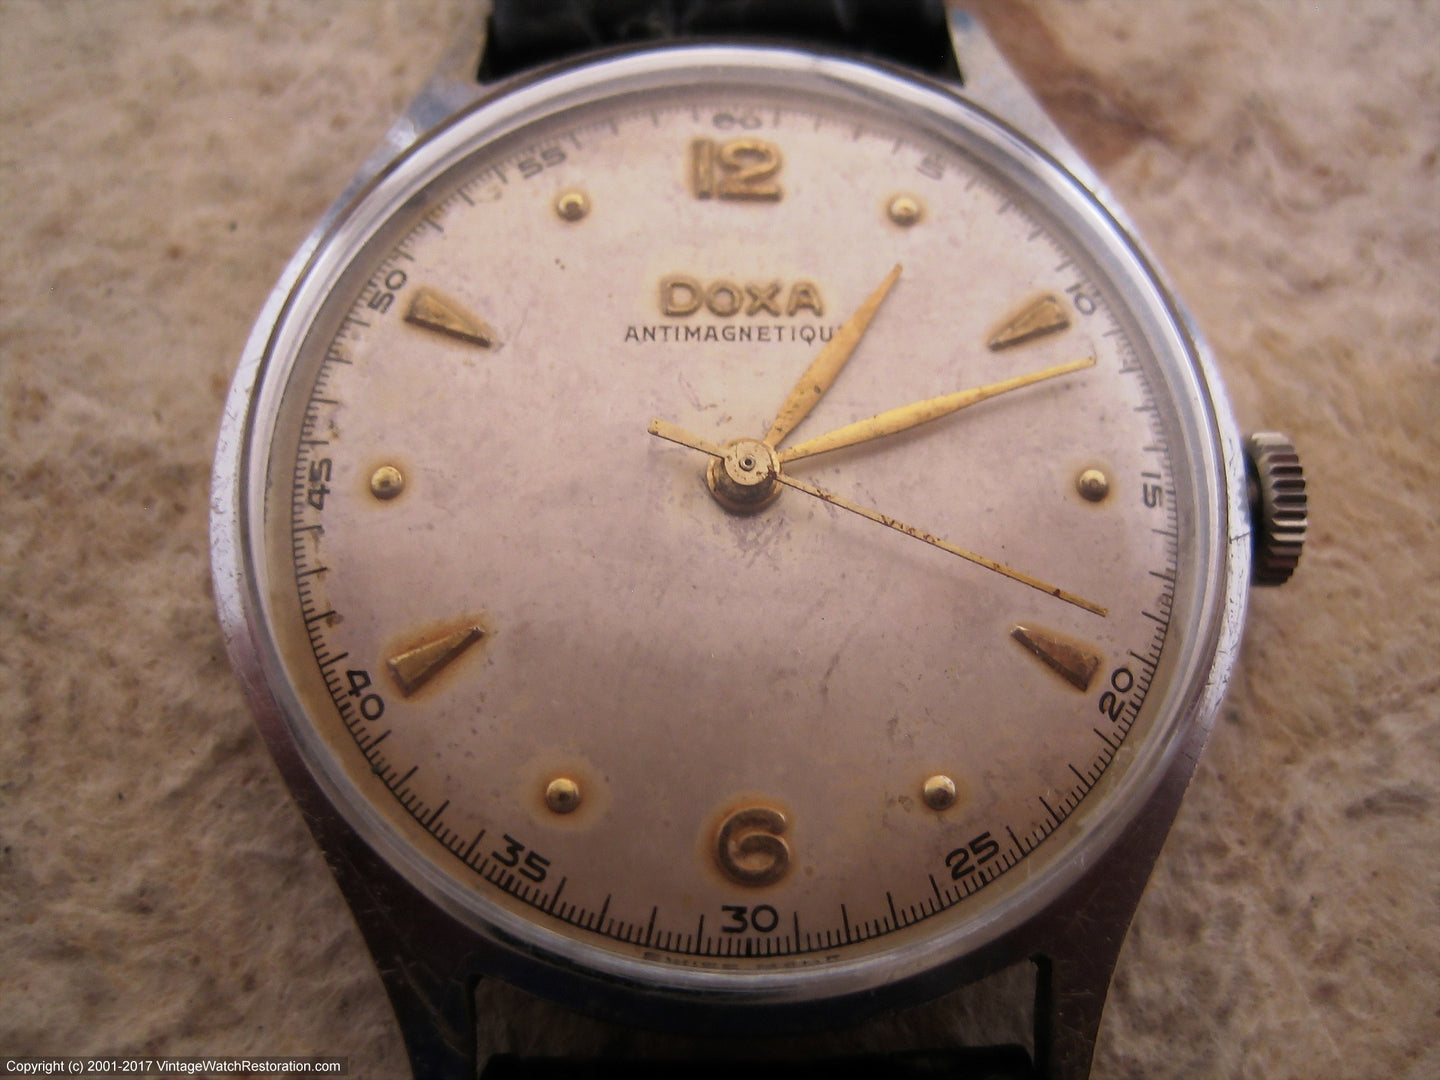 Doxa Antimagnetique with Nice Patina Dial, Manual, Large 35mm